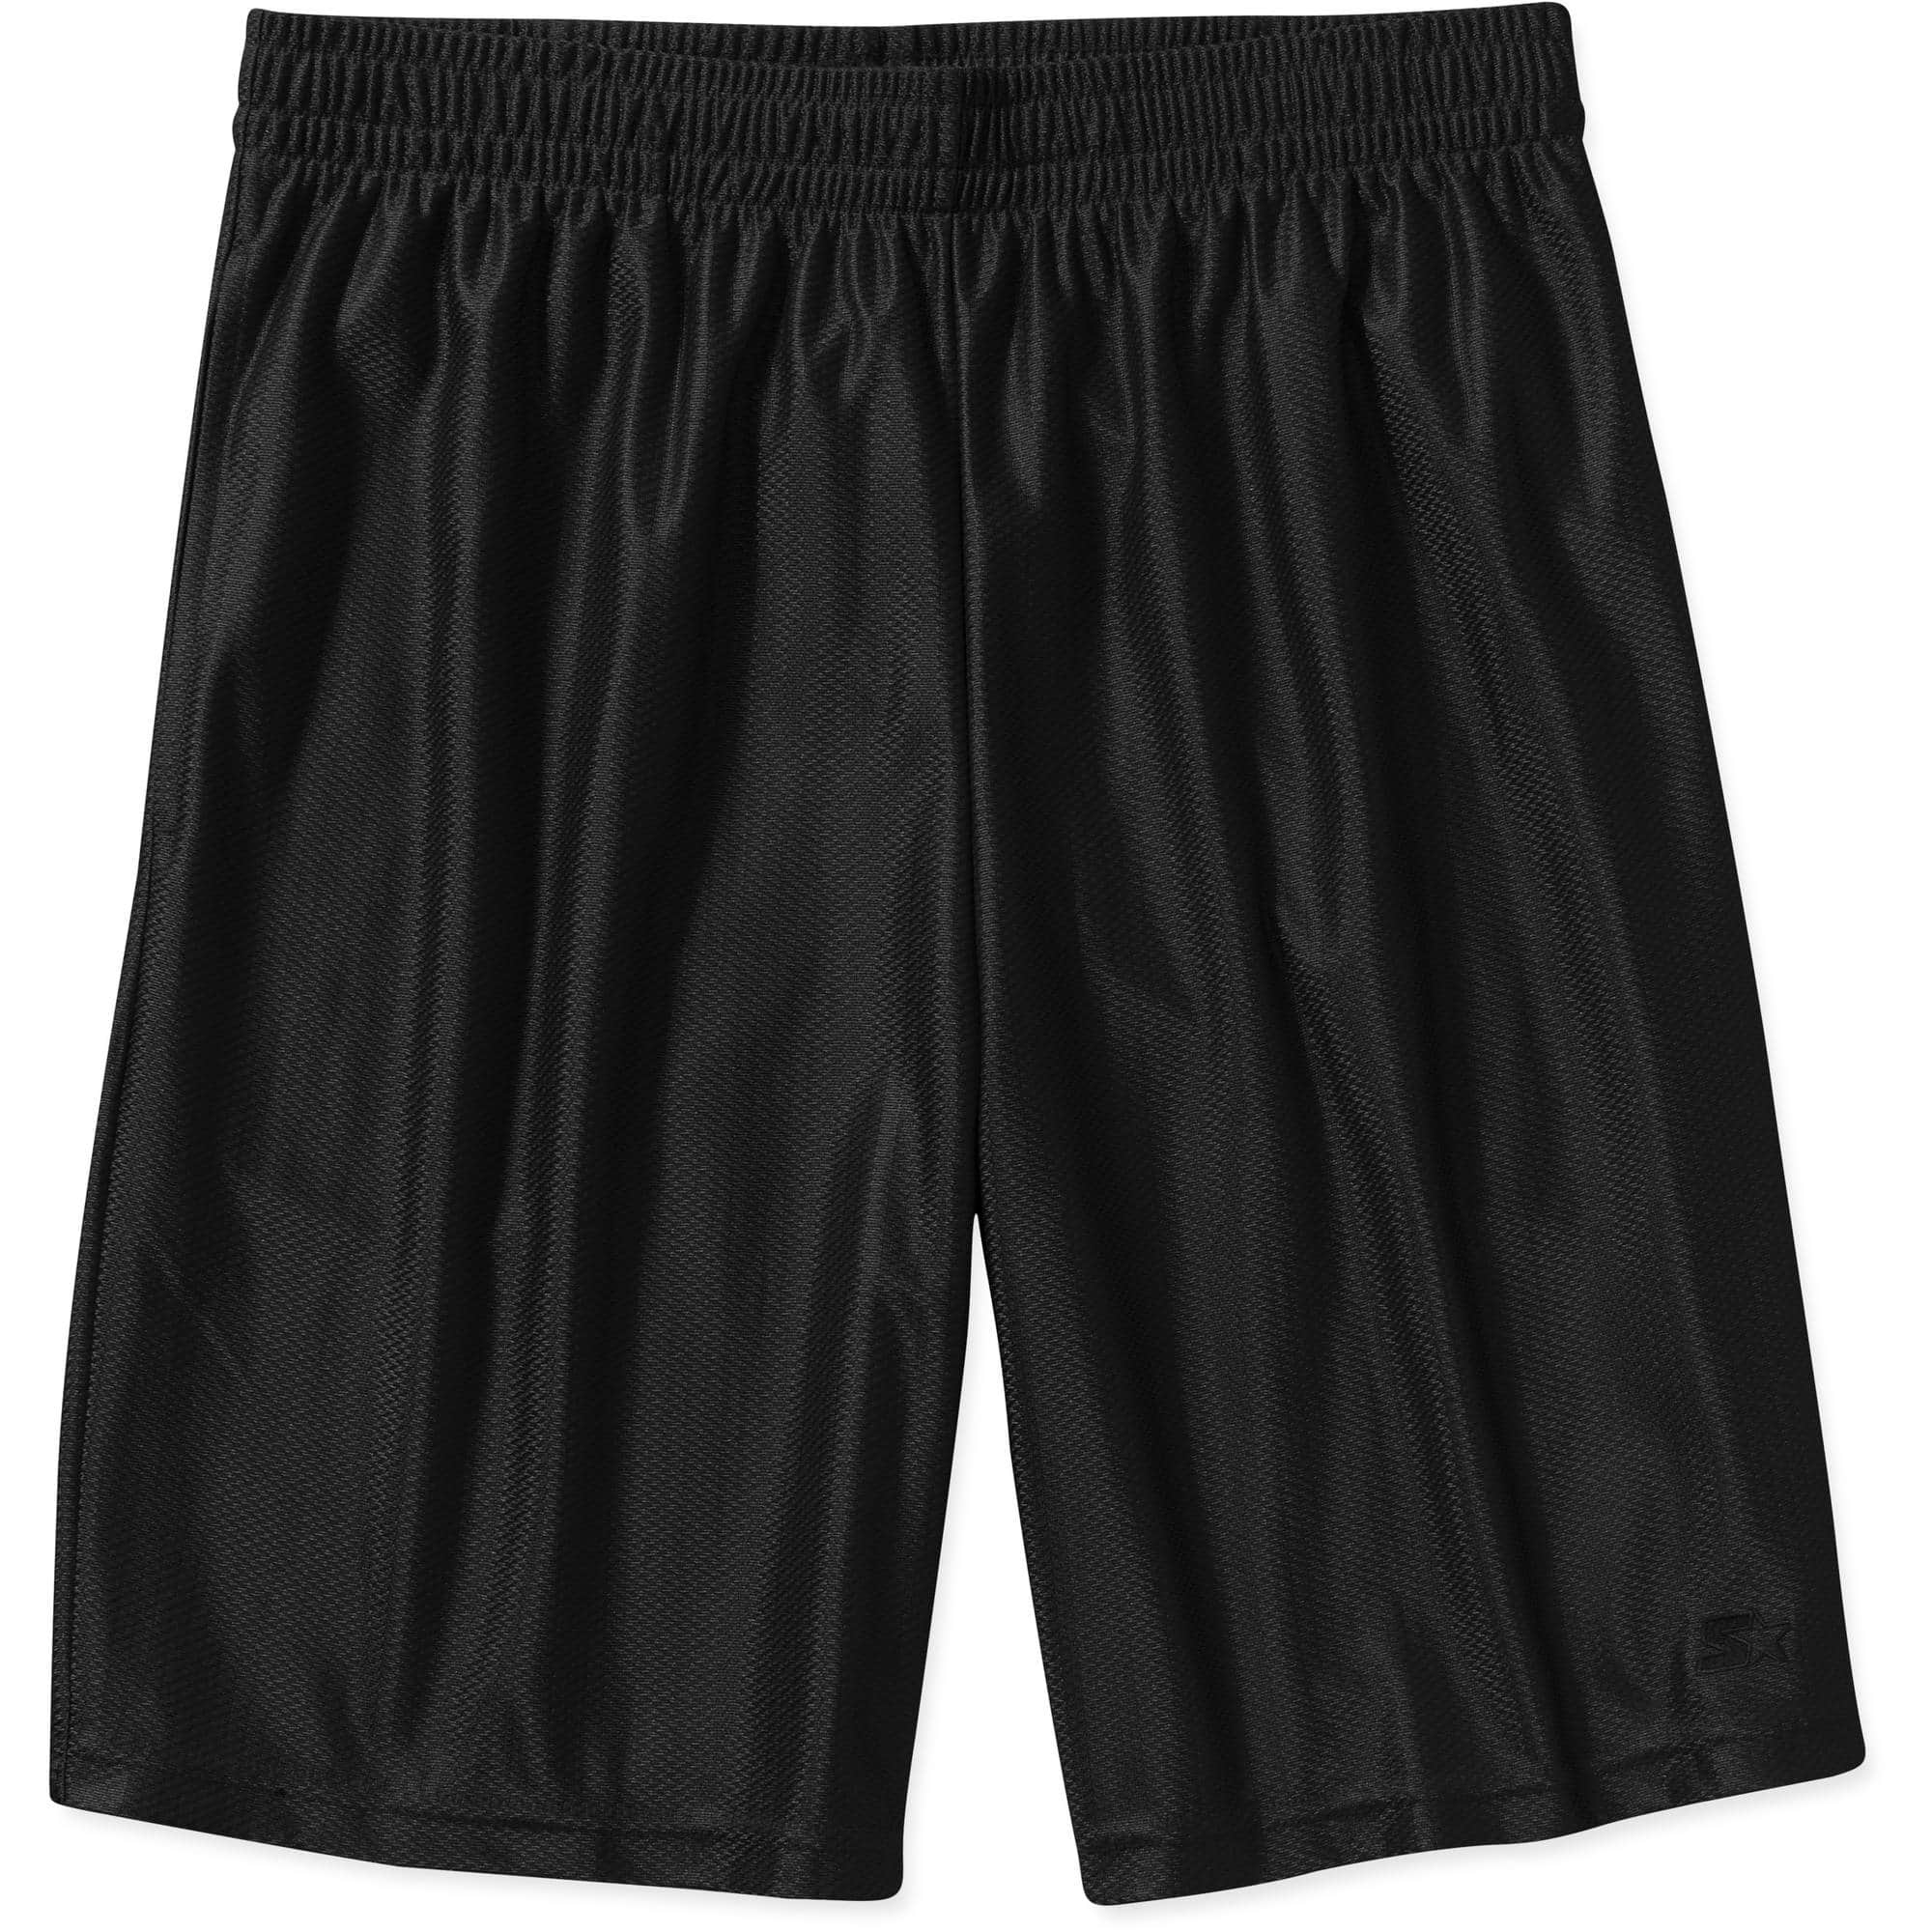 Starter Men's Dazzle Short from $4.10 @Walmart